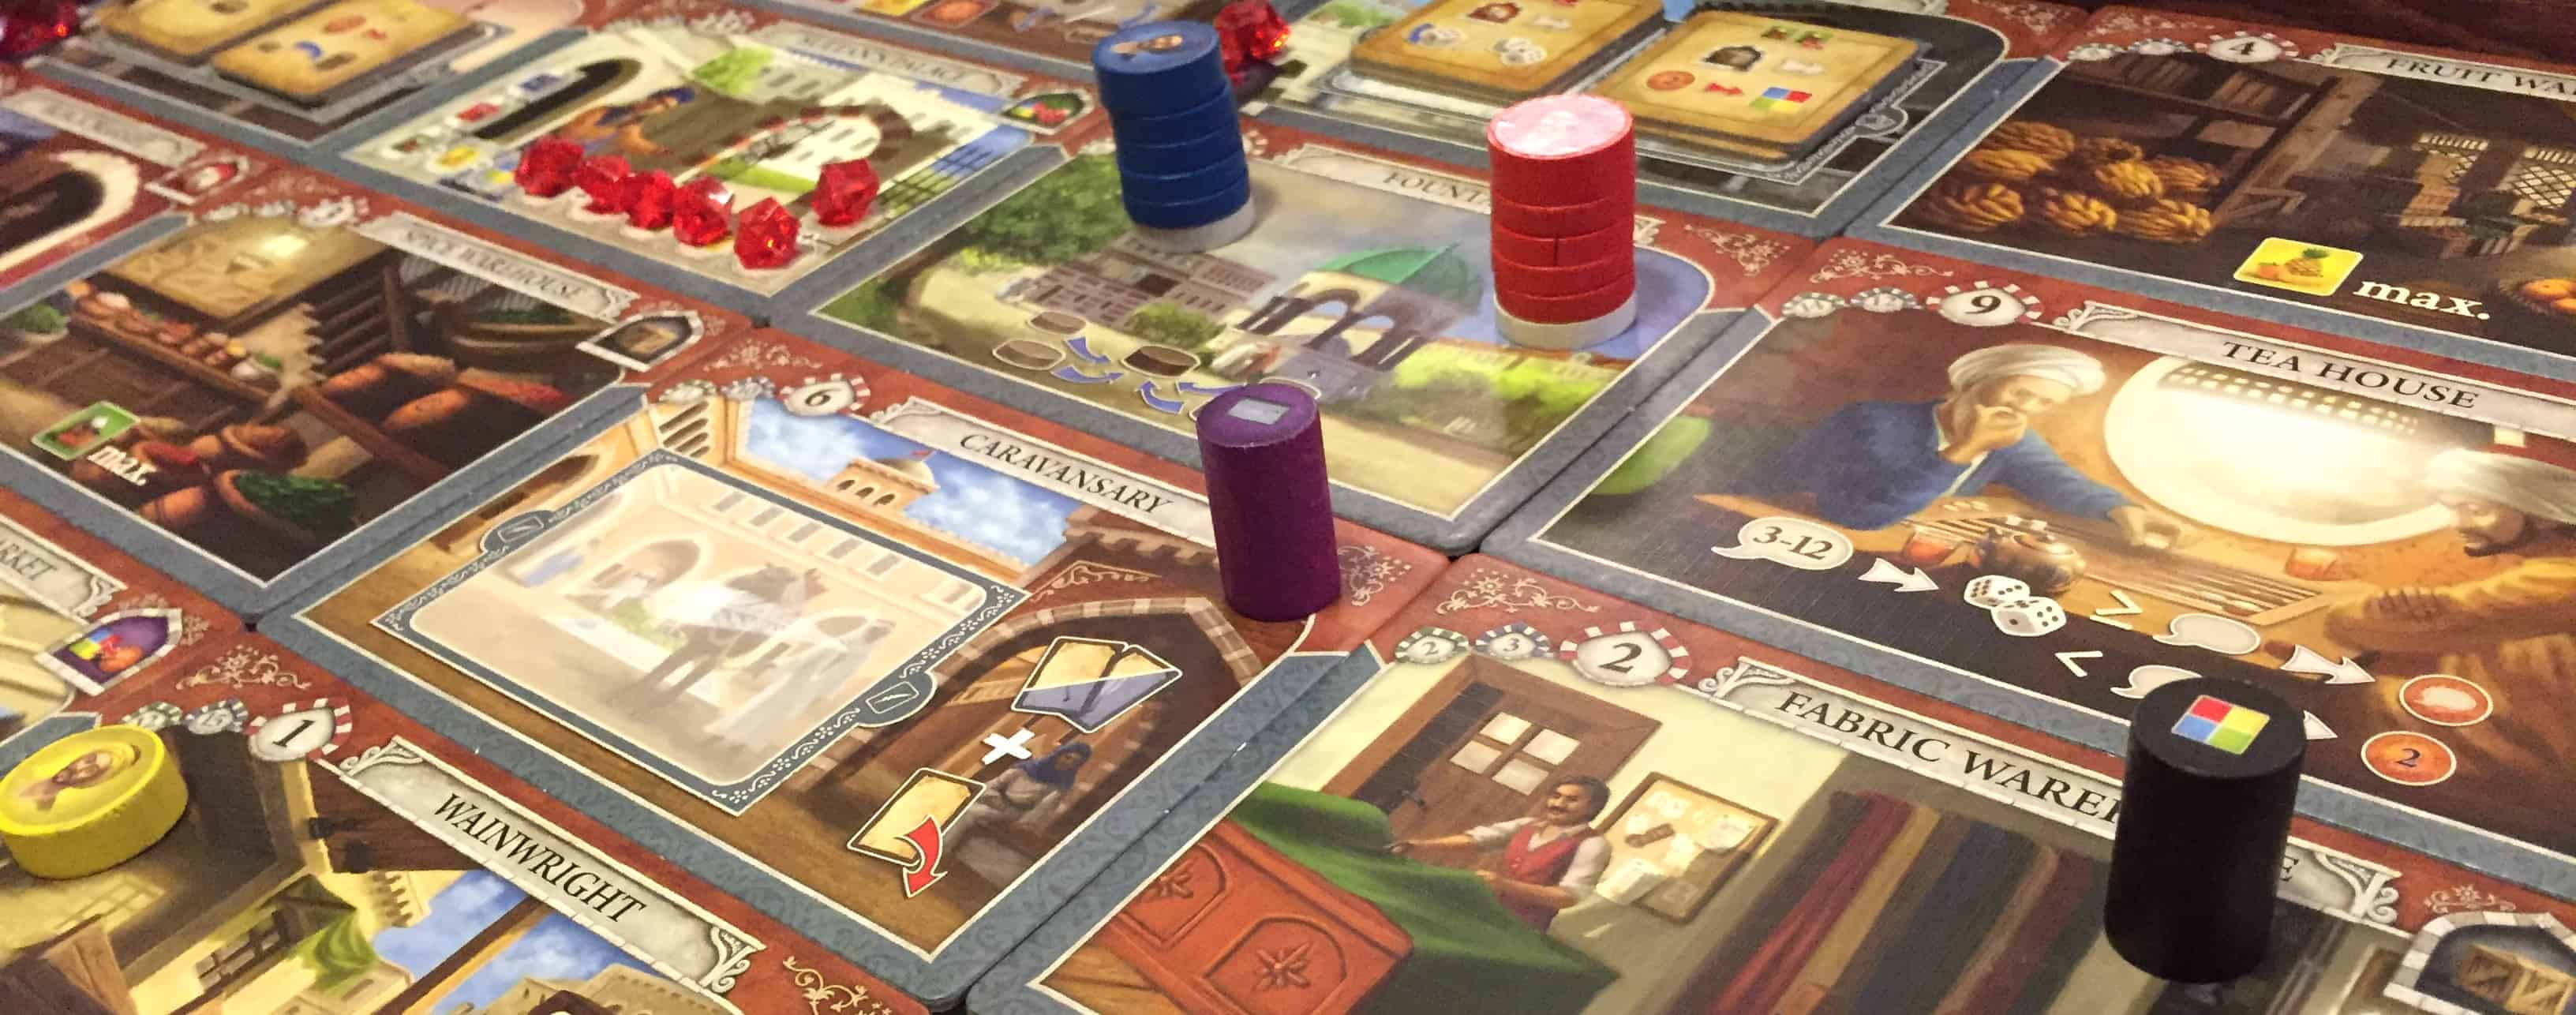 If you like middle east themes and trading, you may find Istanbul to be the best family board game for you!